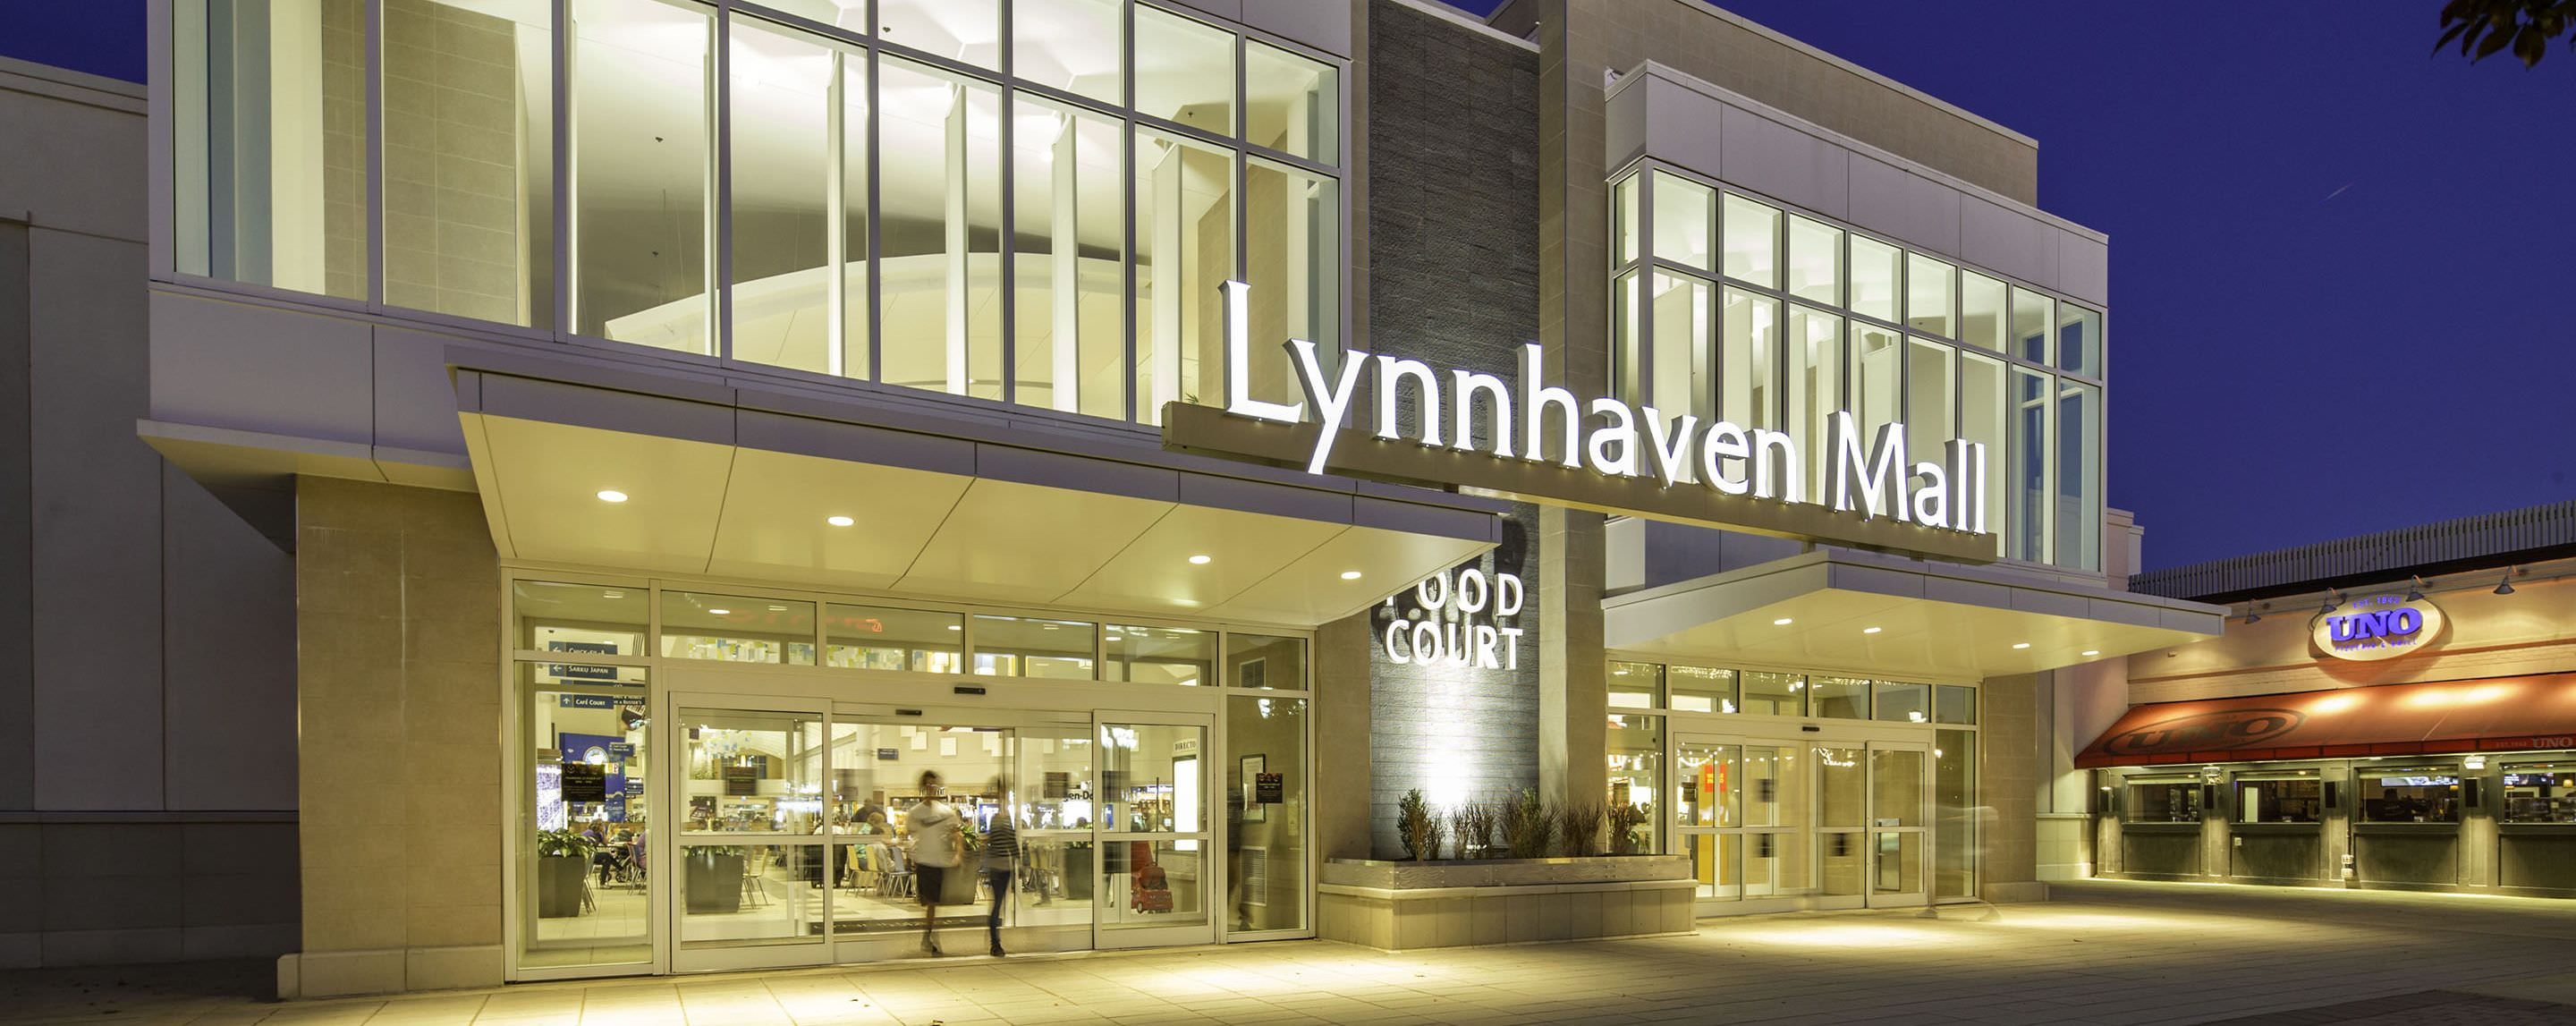 At night, the exterior Lynnhaven Mall sign shines brightly as shoppers leave the property.